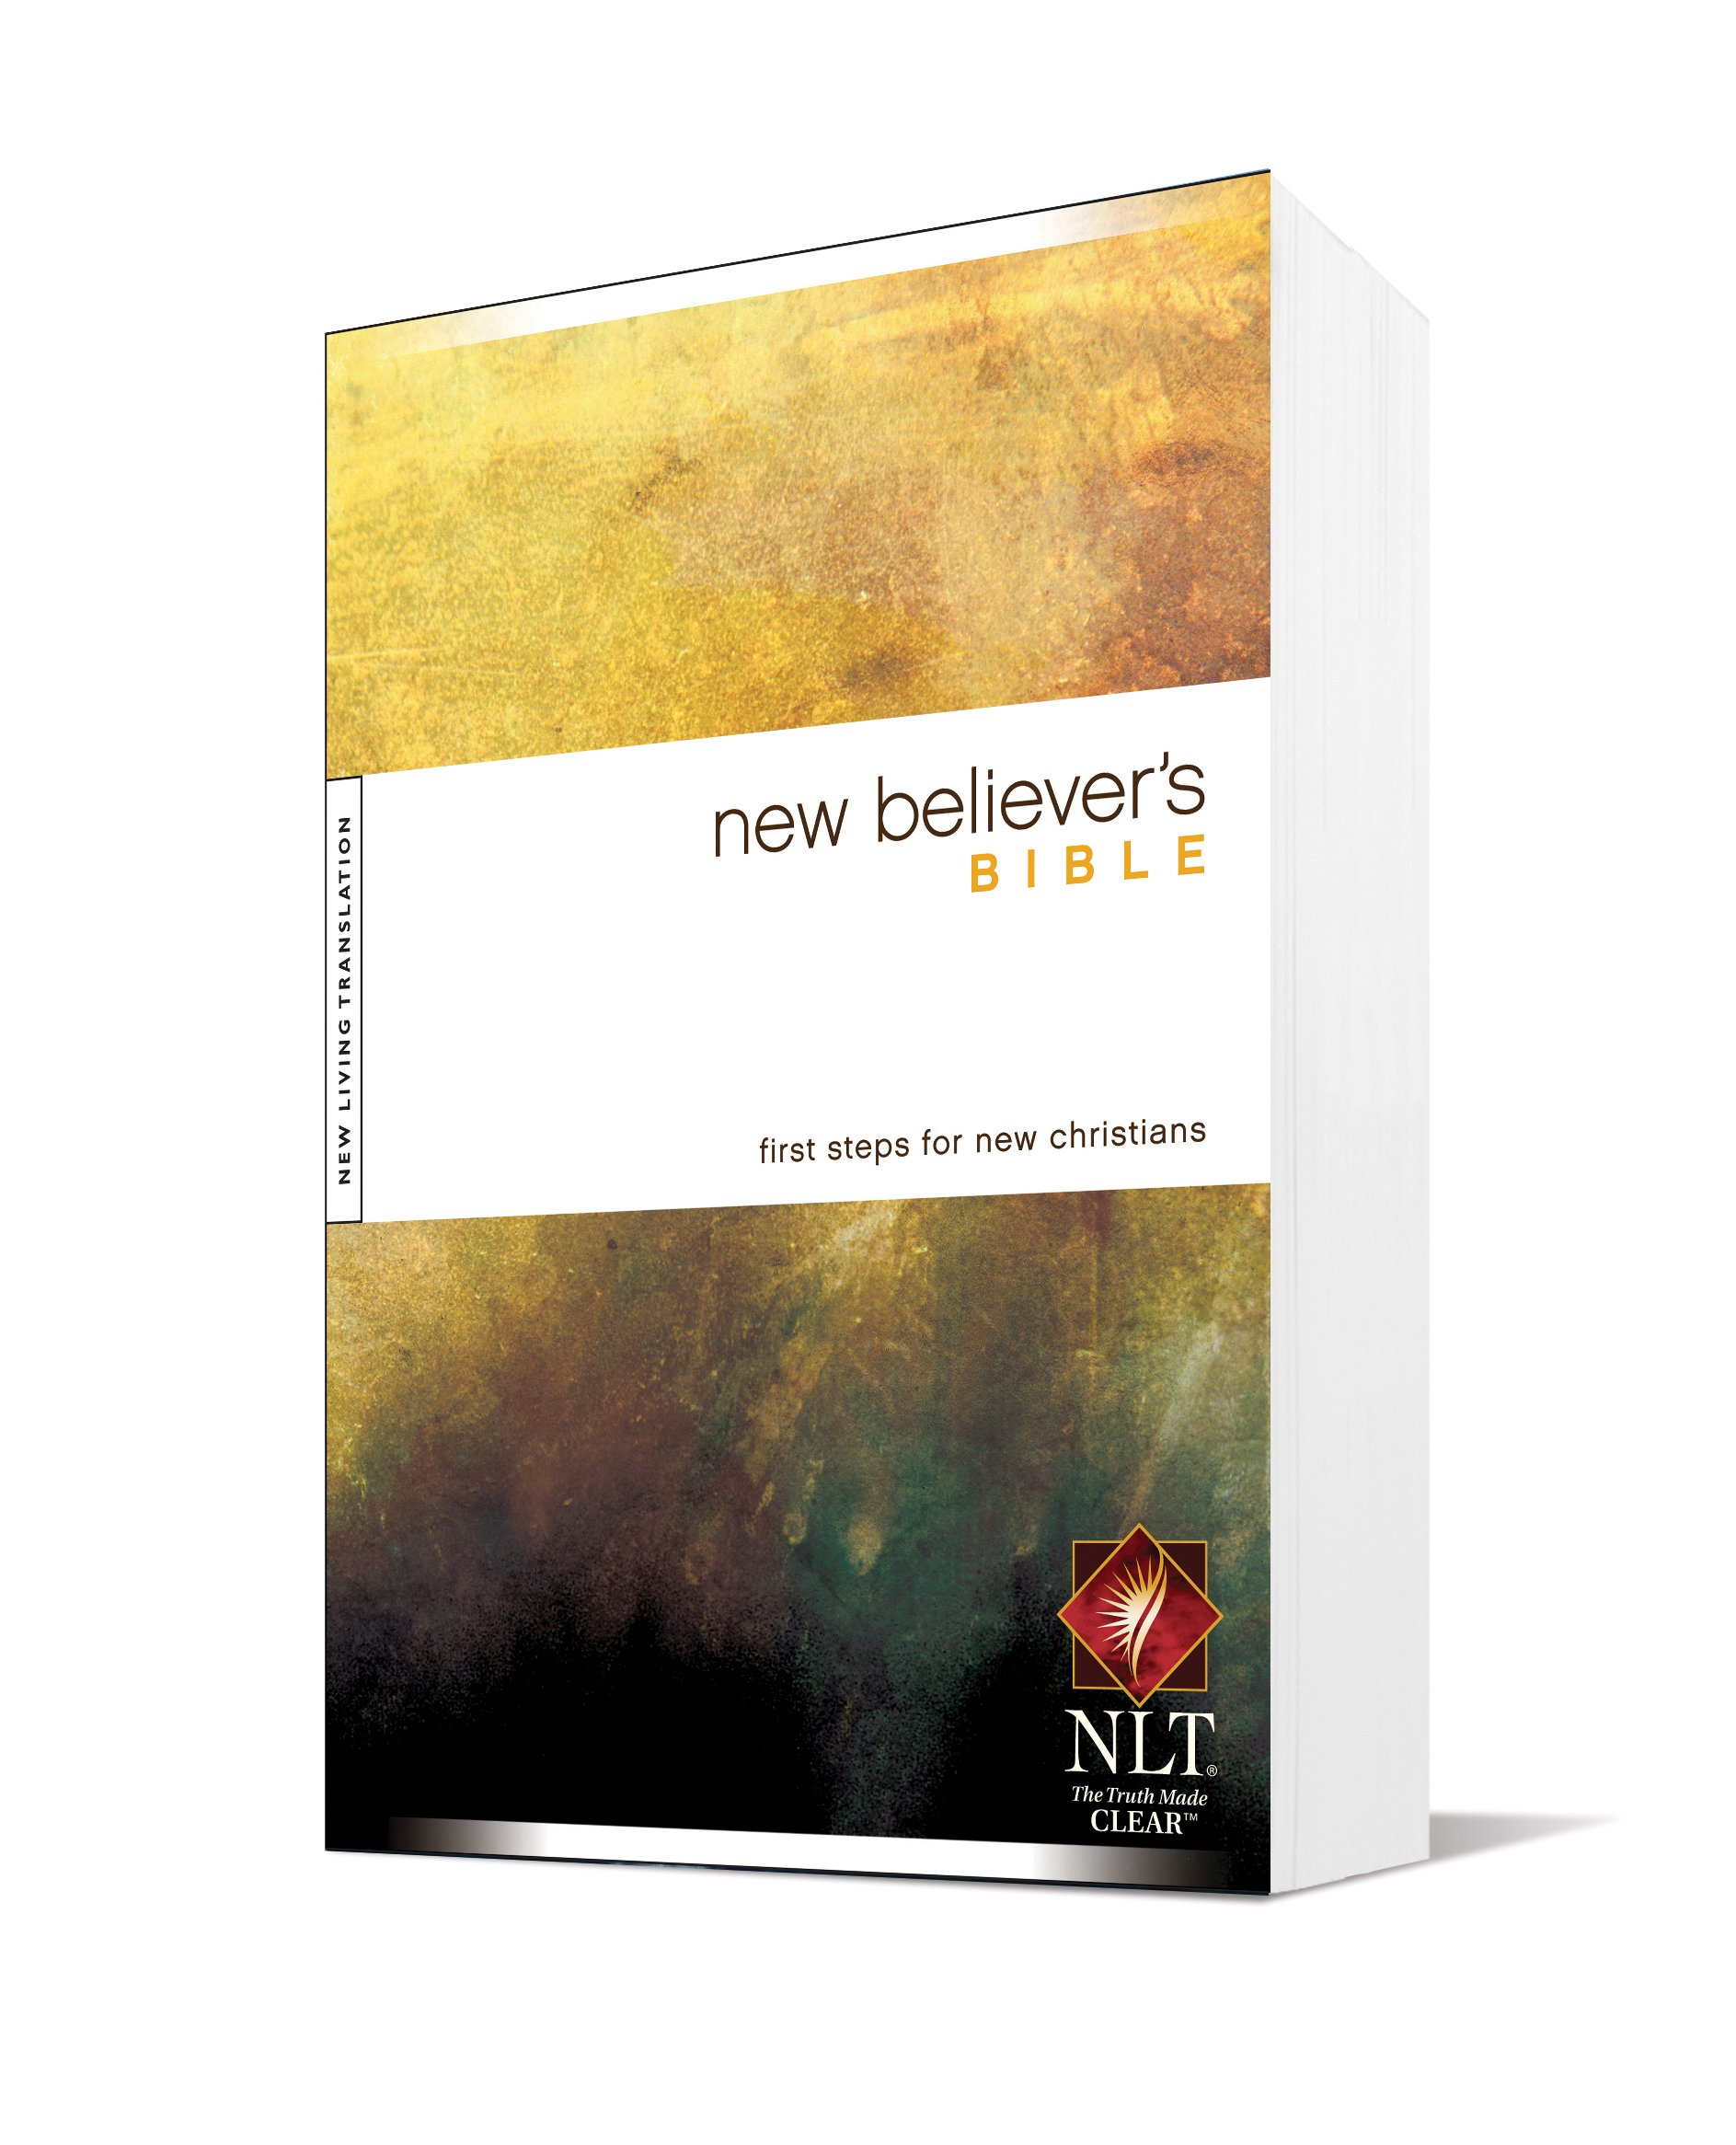 New Believer's Bible NLT (Hardcover): Tyndale: 9781414302553